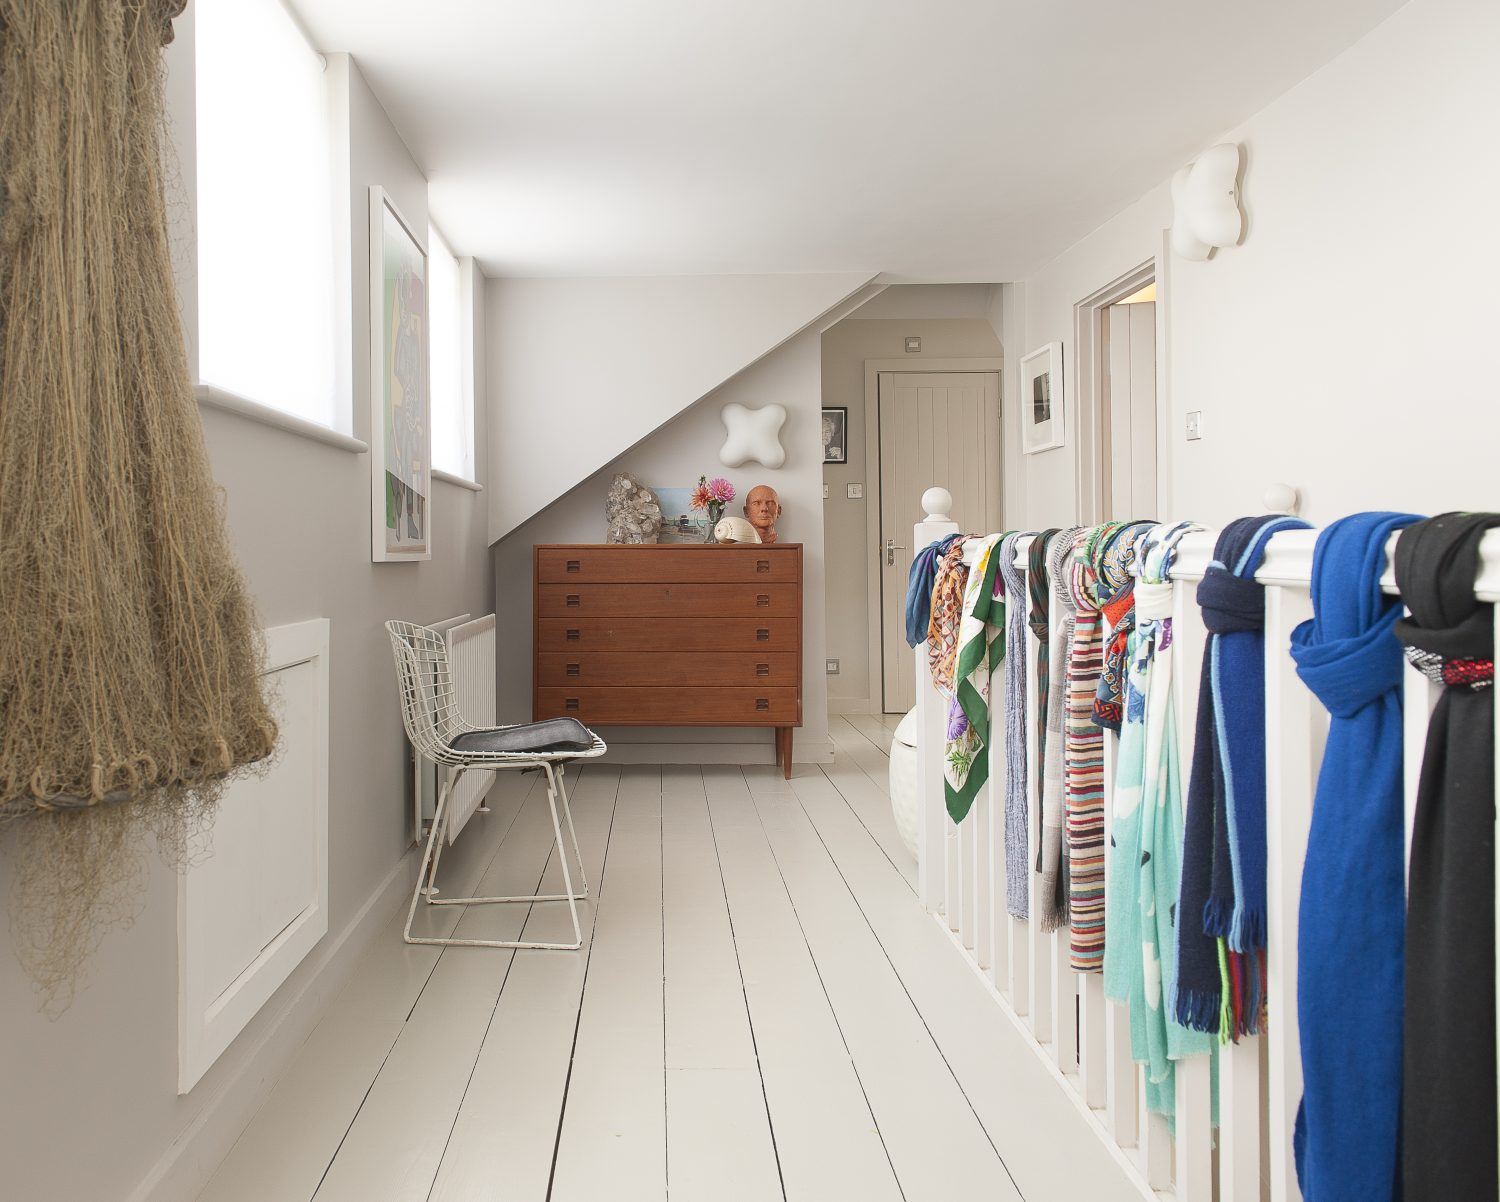 The landing. Scarves are tied onto the bannisters, introducing pops of colour to an otherwise neutrally painted space